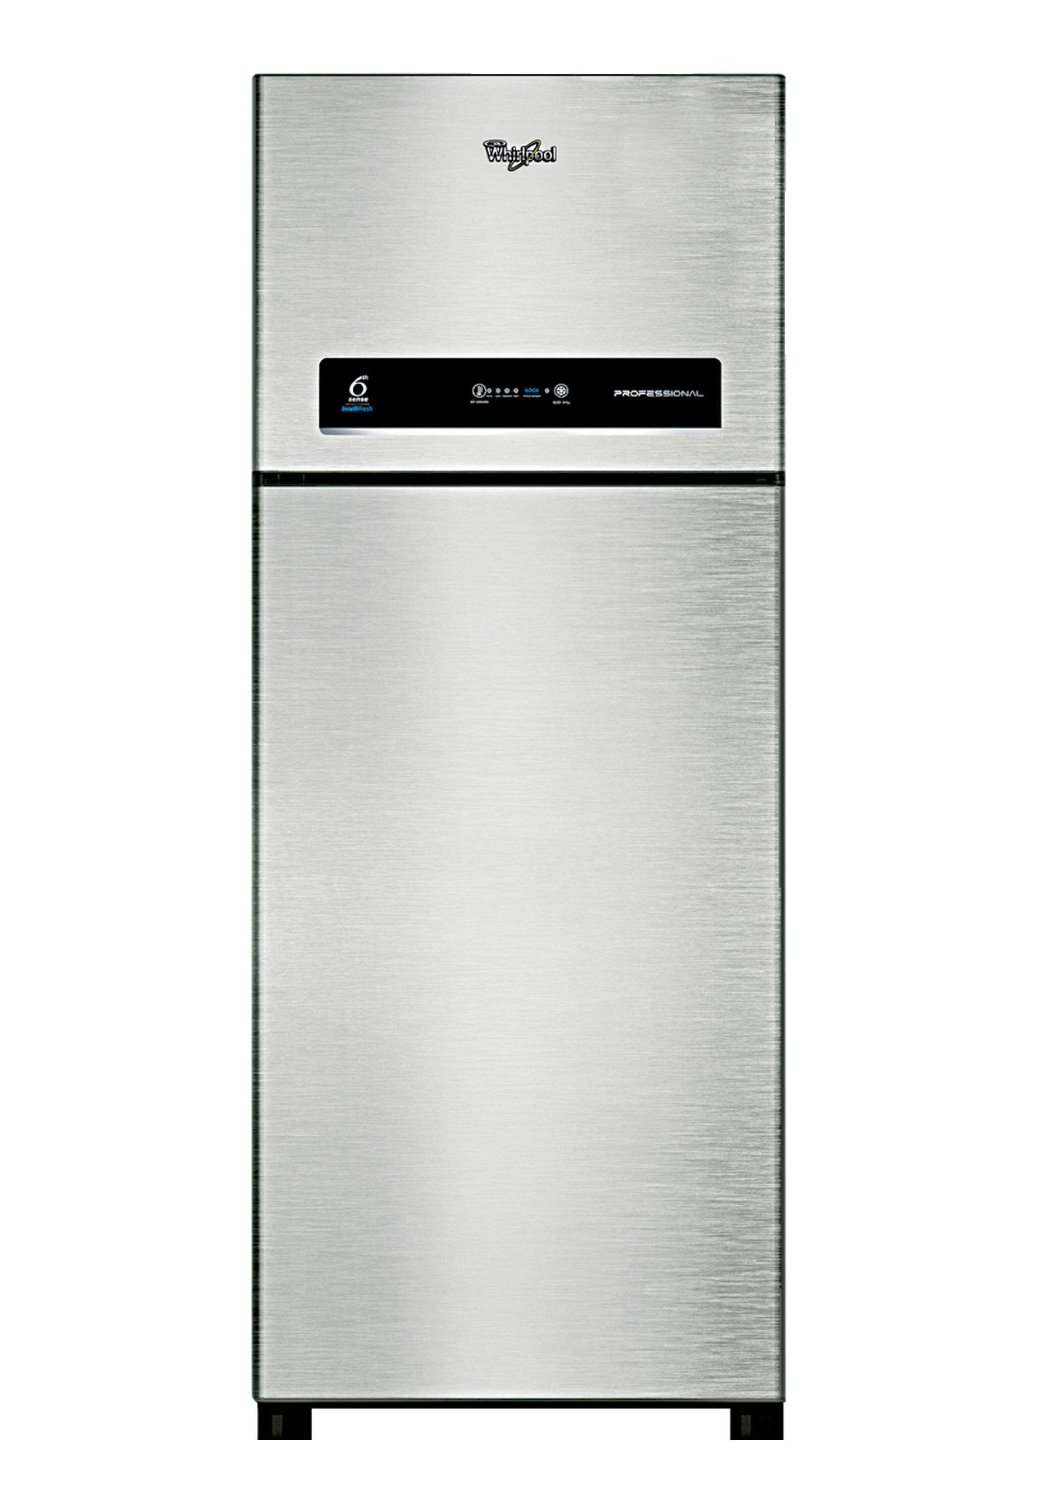 Whirlpool Pro 465 Elite Double Door Refrigerator 445 Ltrs